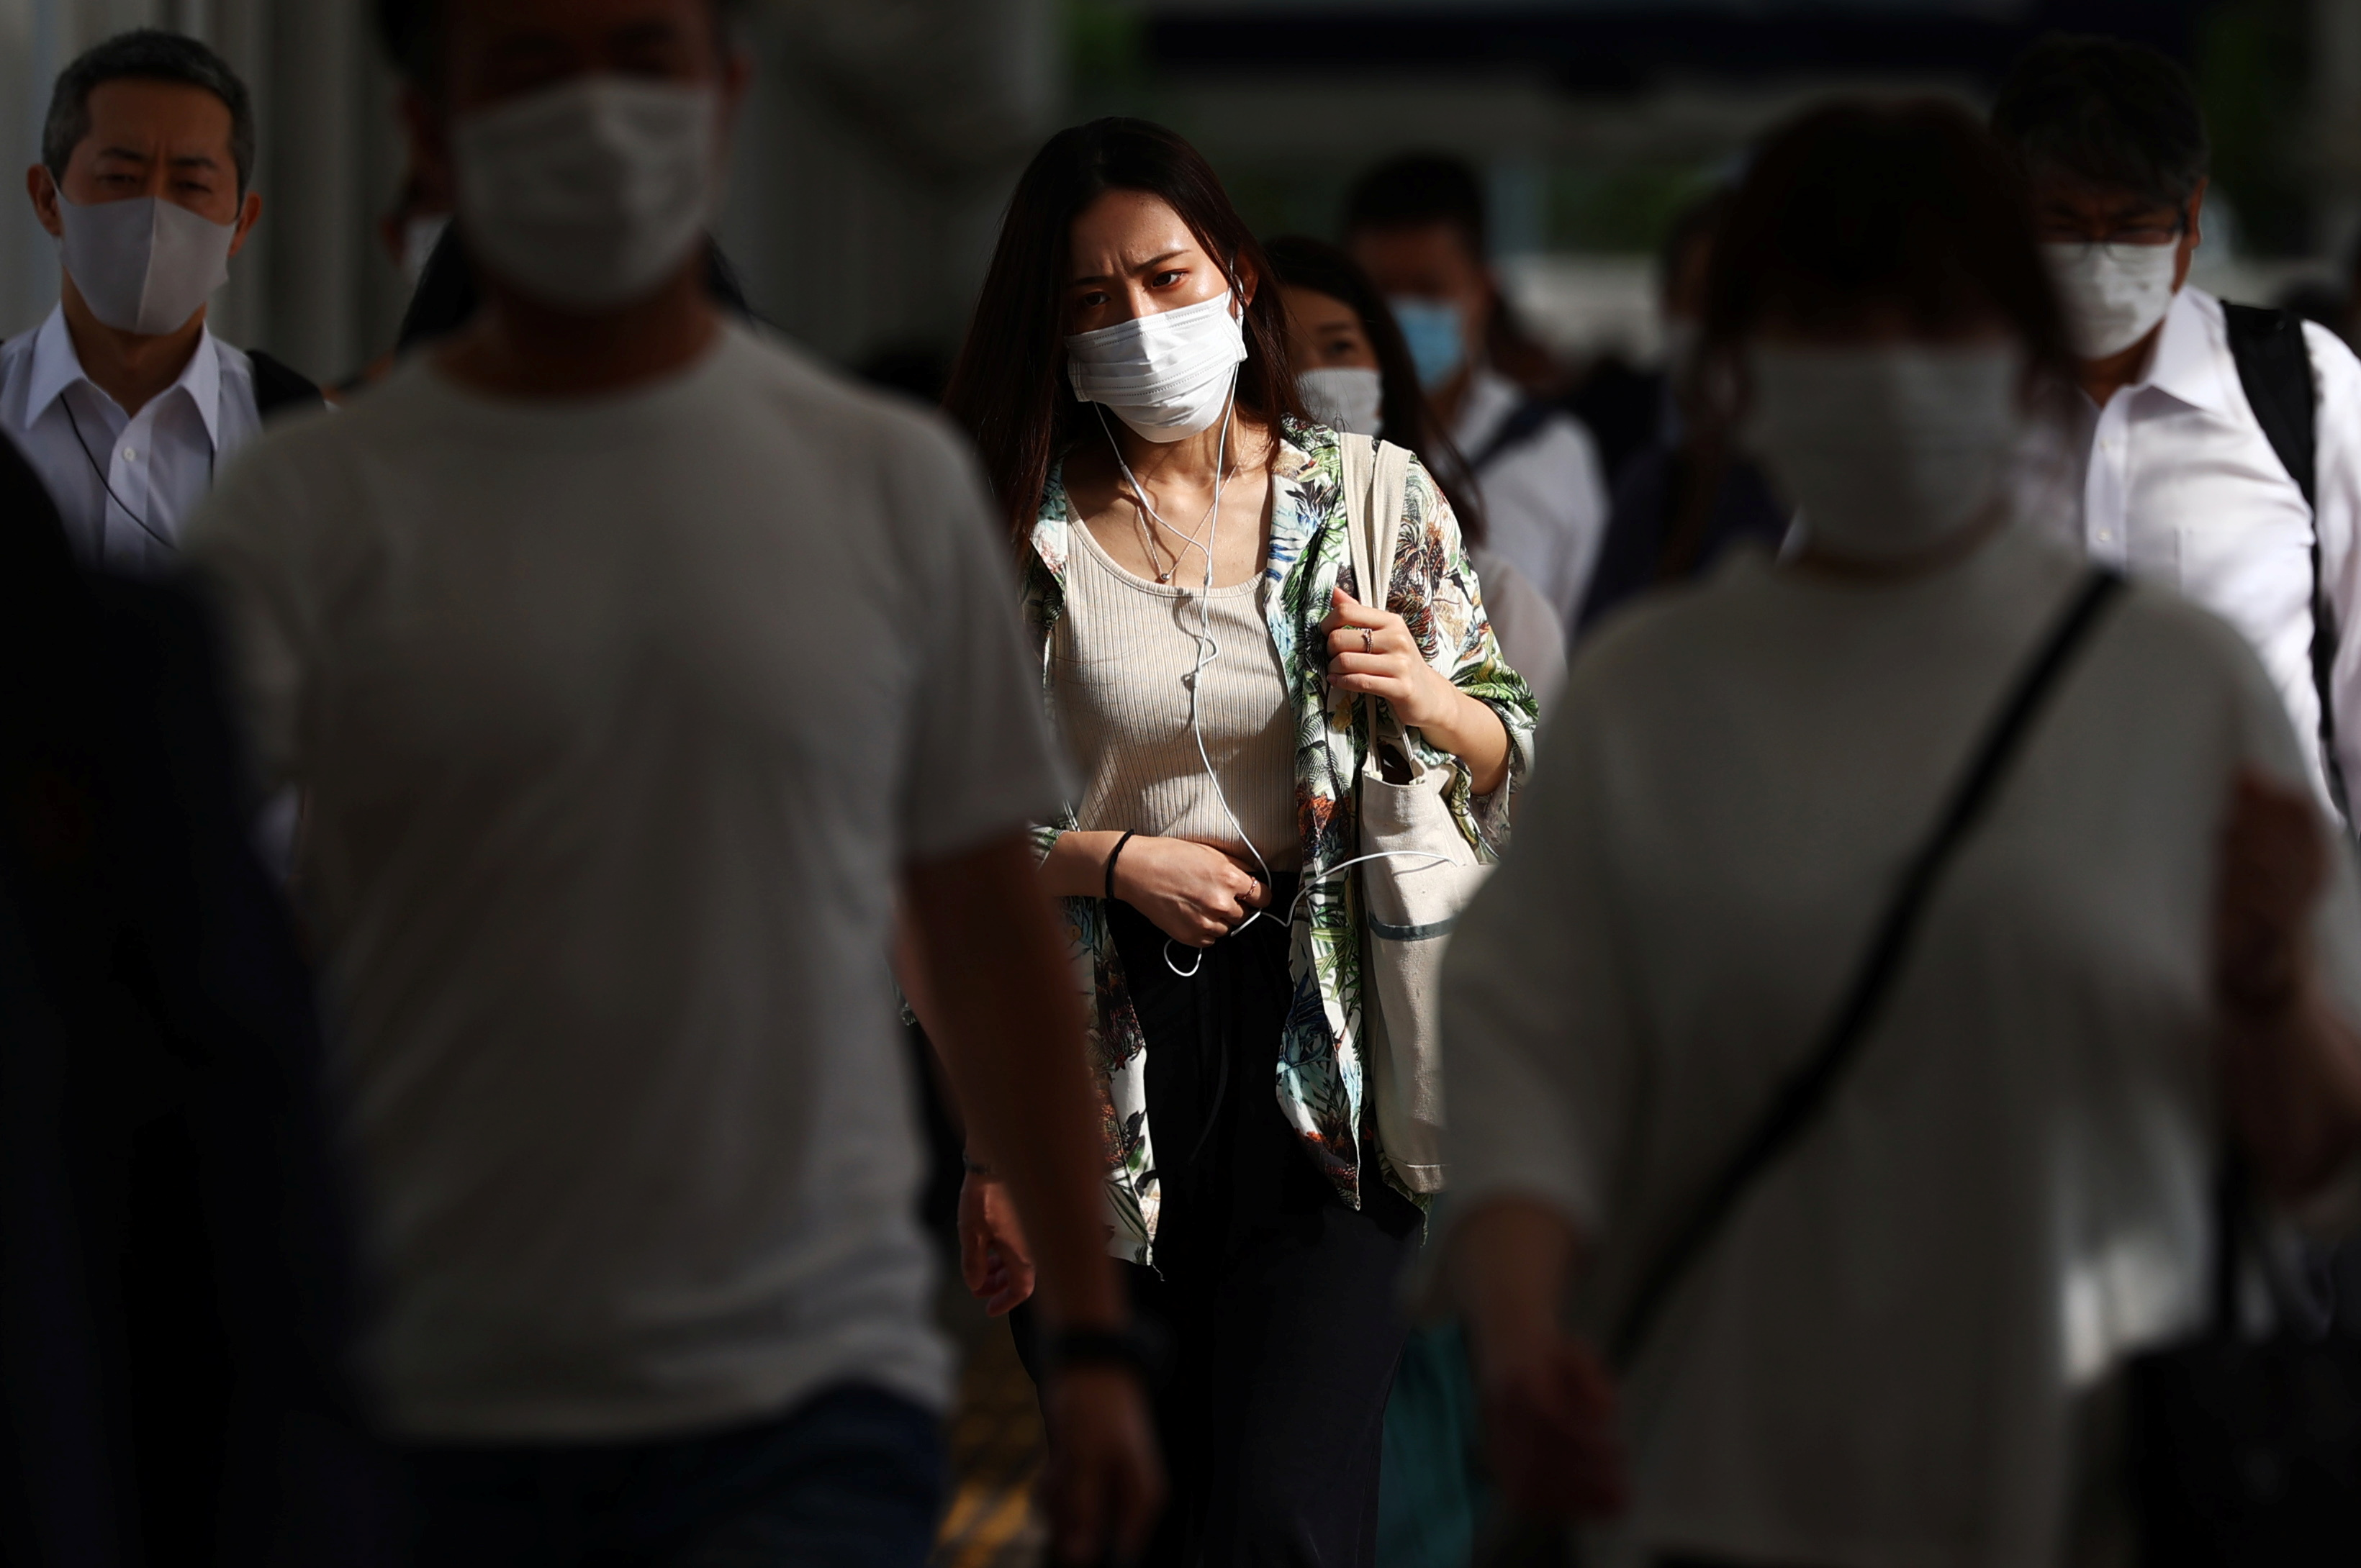 Commuters wearing masks leave a train station during the coronavirus disease (COVID-19) outbreak in Tokyo, Japan July 16, 2021. REUTERS/Edgar Su